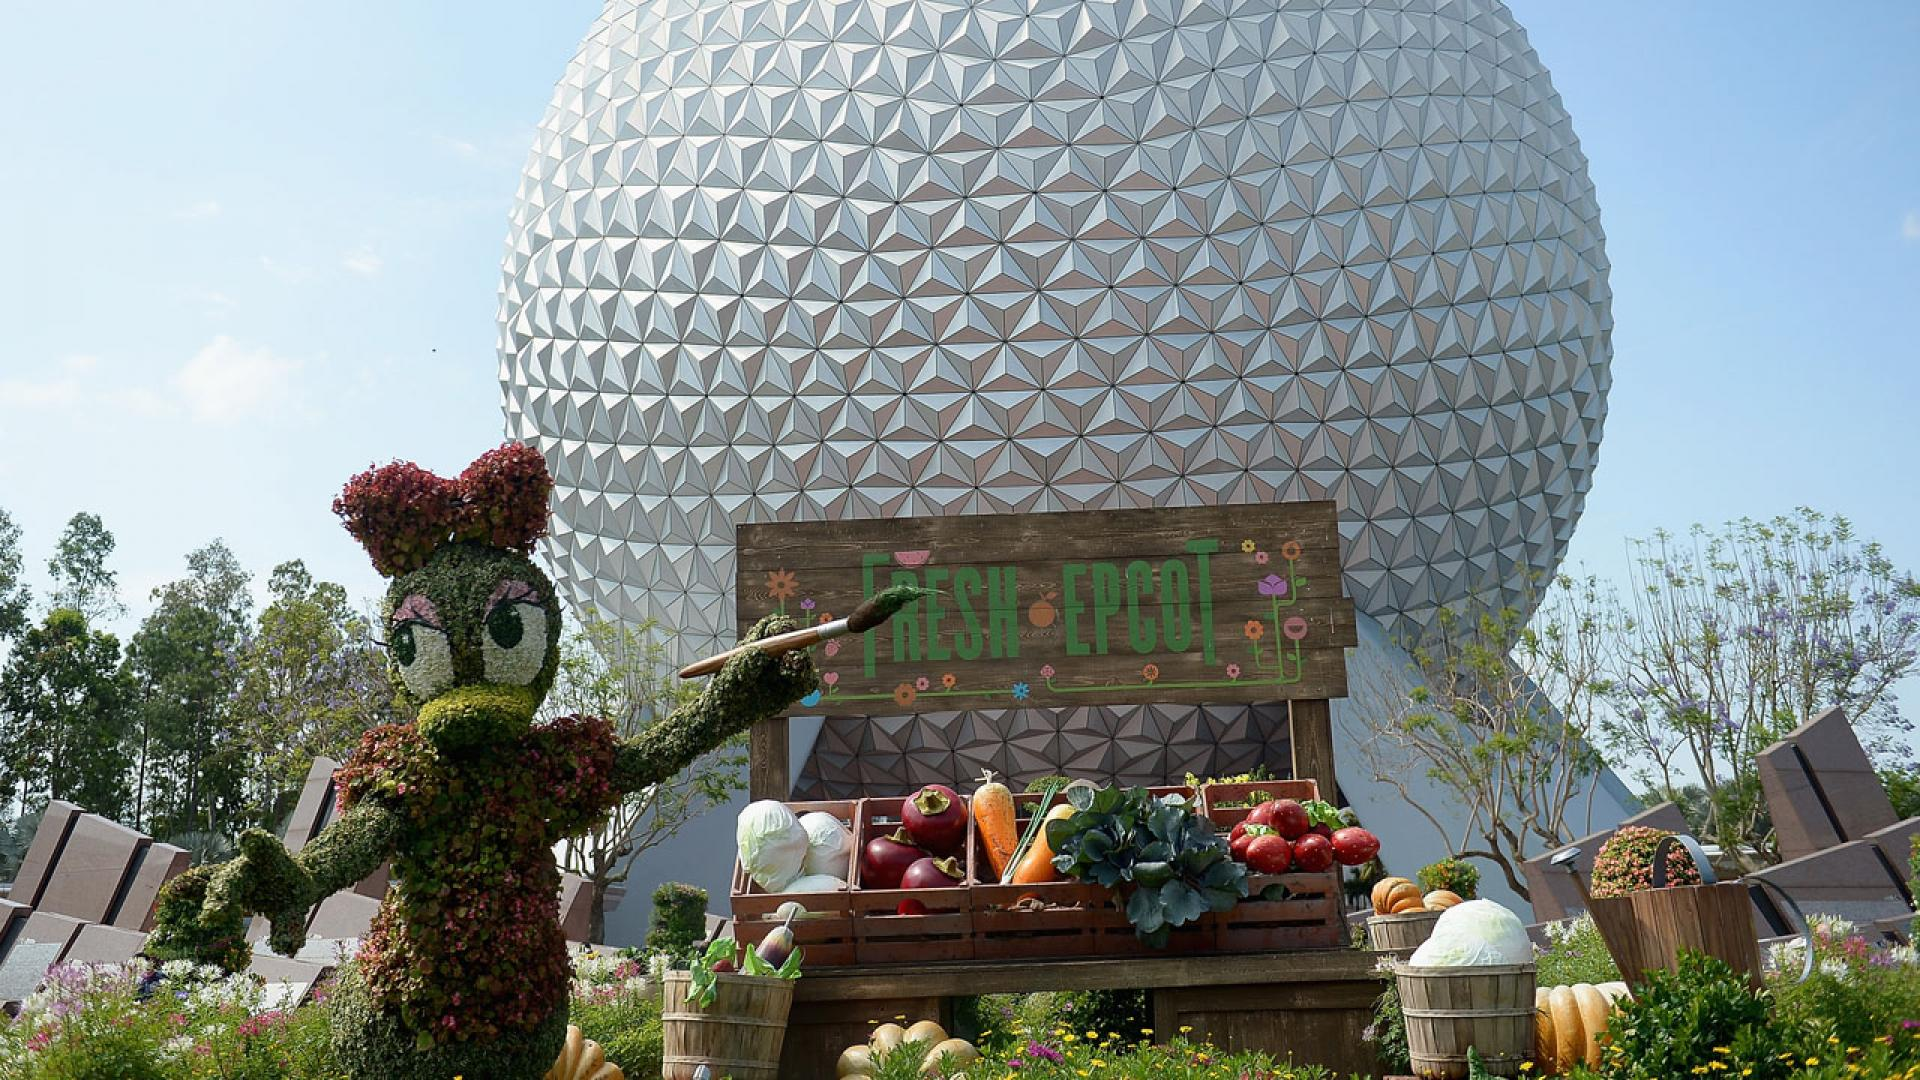 Epcot Center at Disney World in Orlando, Florida.